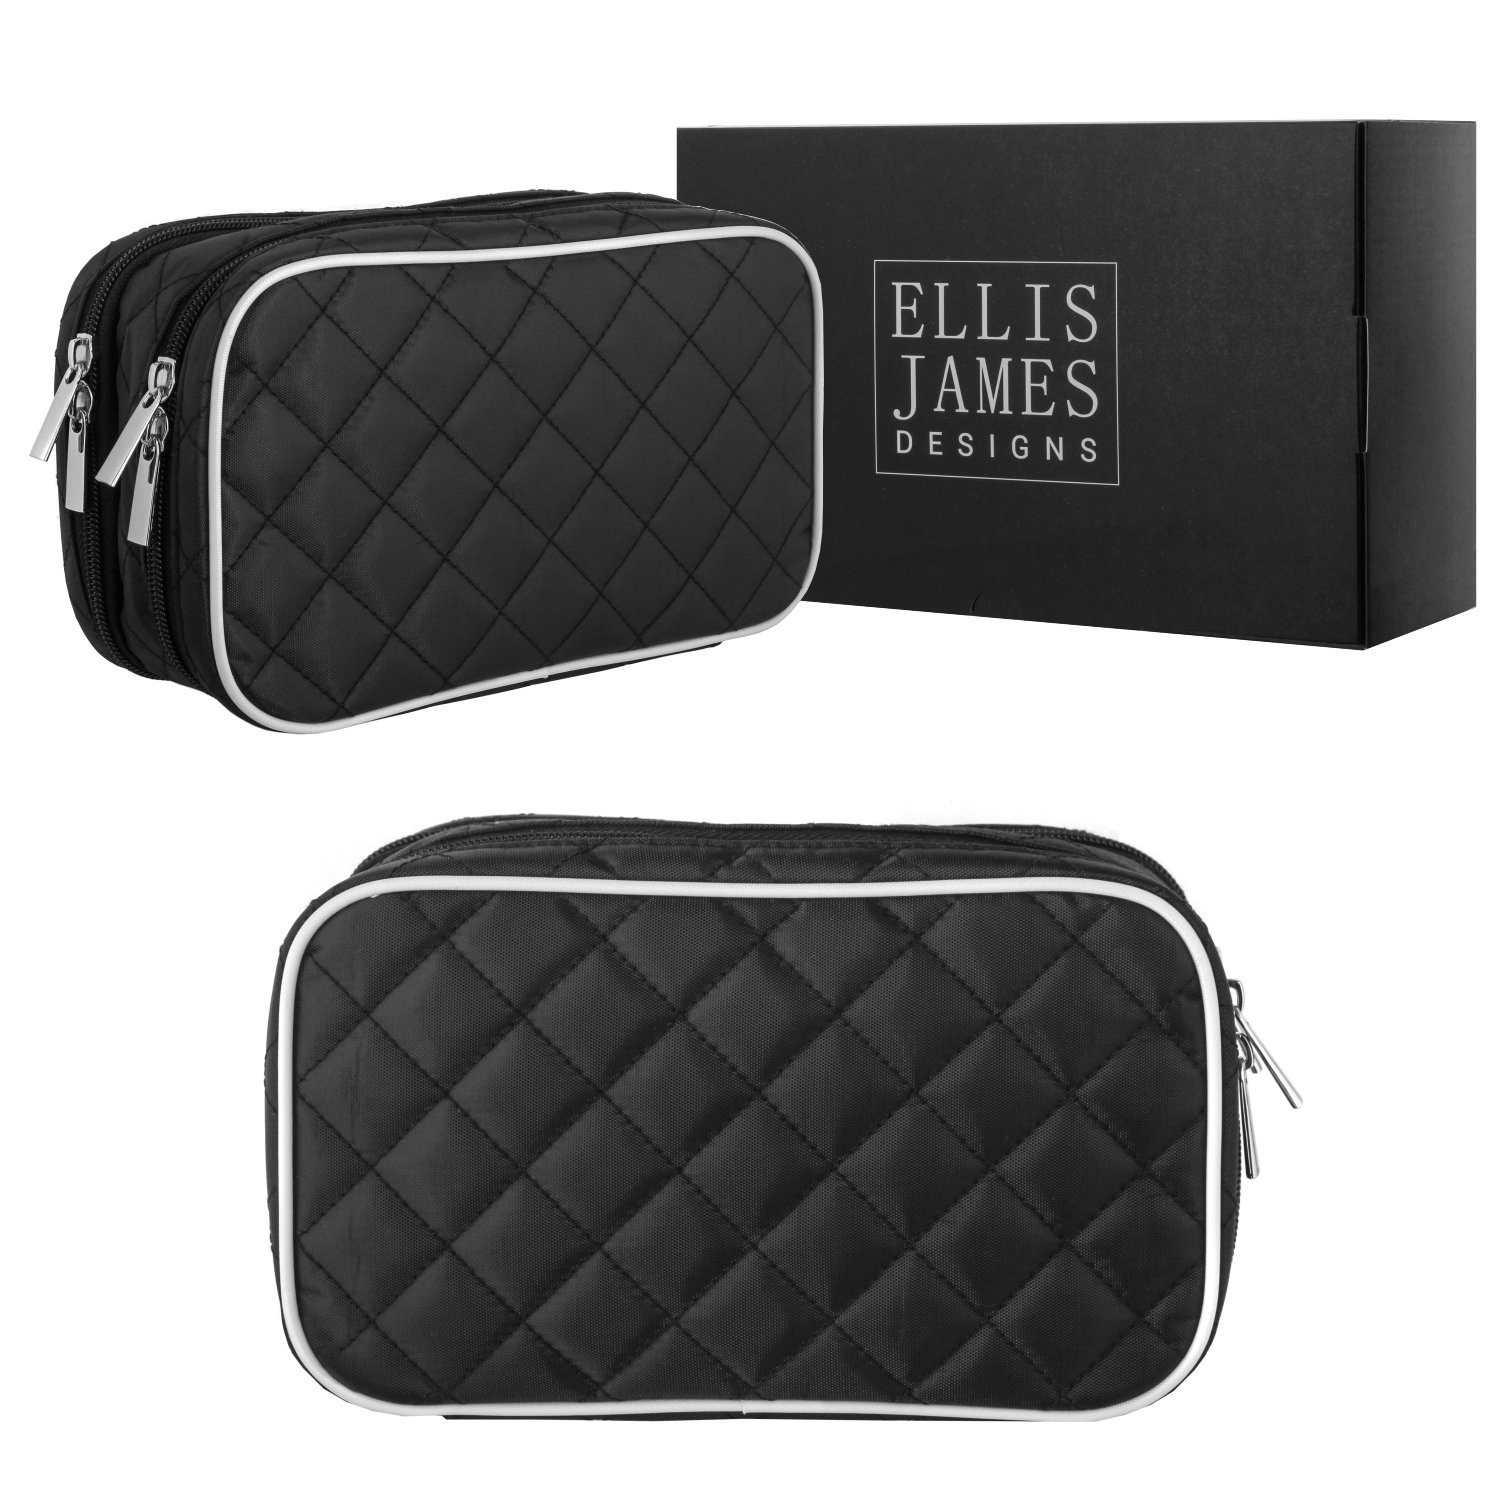 Ellis James Designs Quilted Travel Jewelry Organizer Bag Case - Black - with Makeup Pouch Compartments Soft Padded Travel Jewelry Roll and Make Up Bags 2-in-1 Cosmetic Cases with Necklace Holder